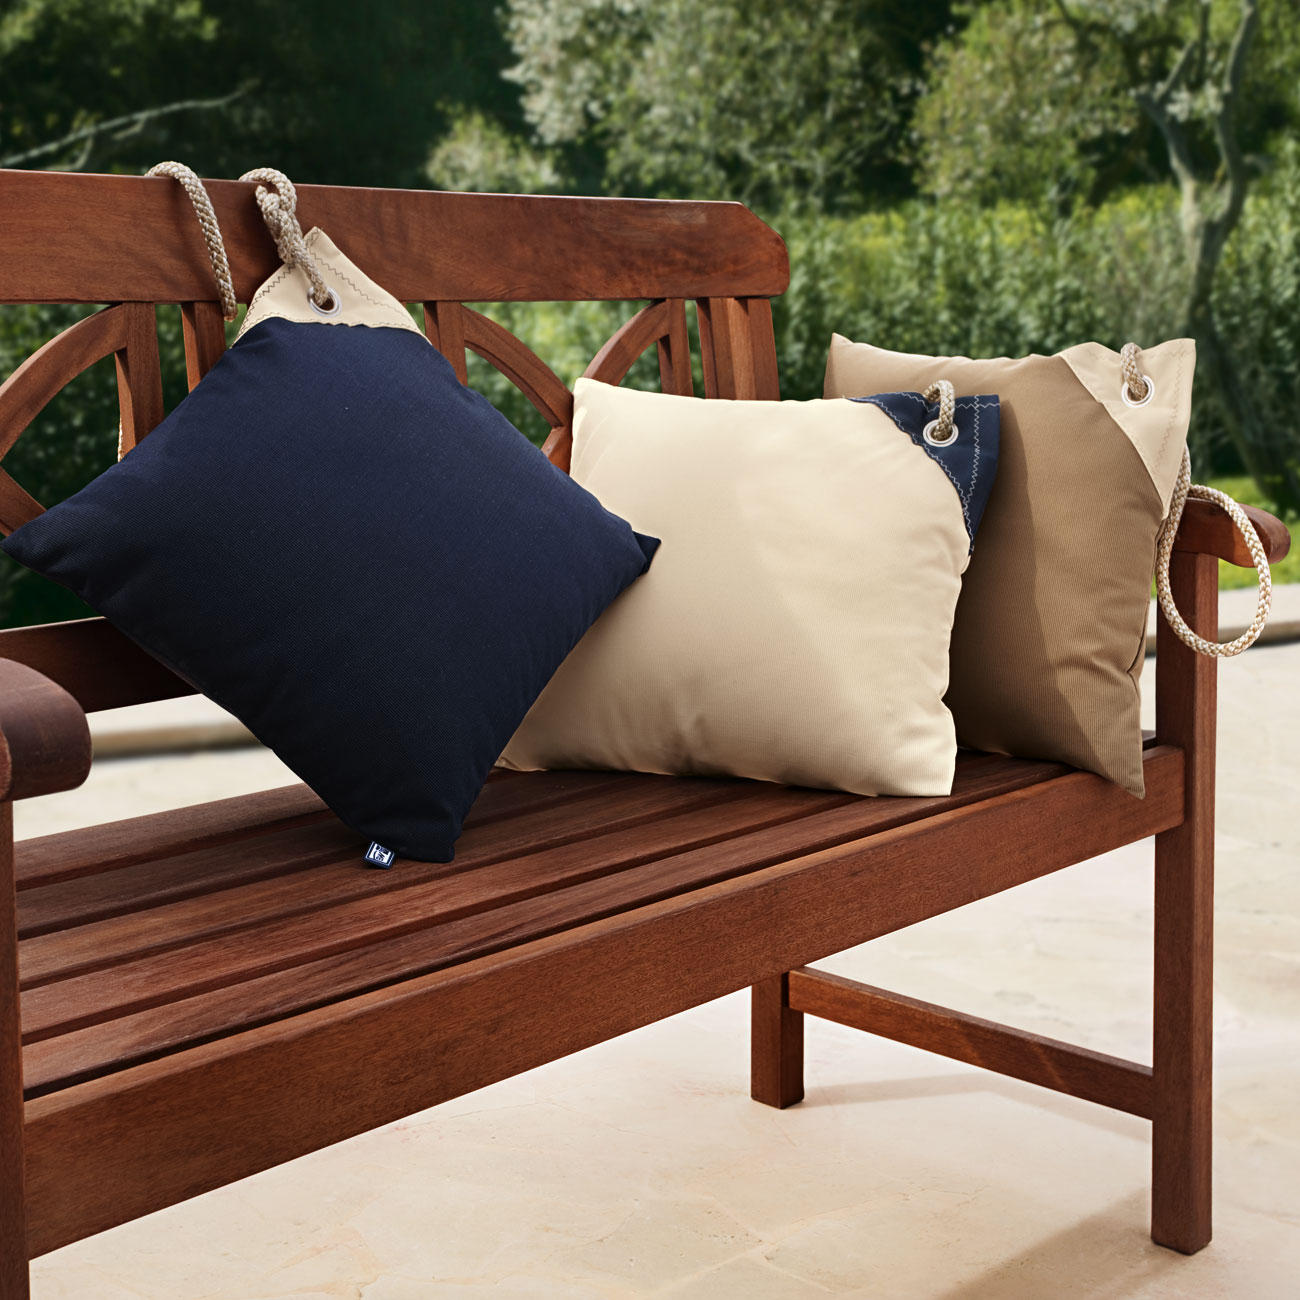 Outdoor Patio Furniture Cushions Waterproof Home Furniture Design